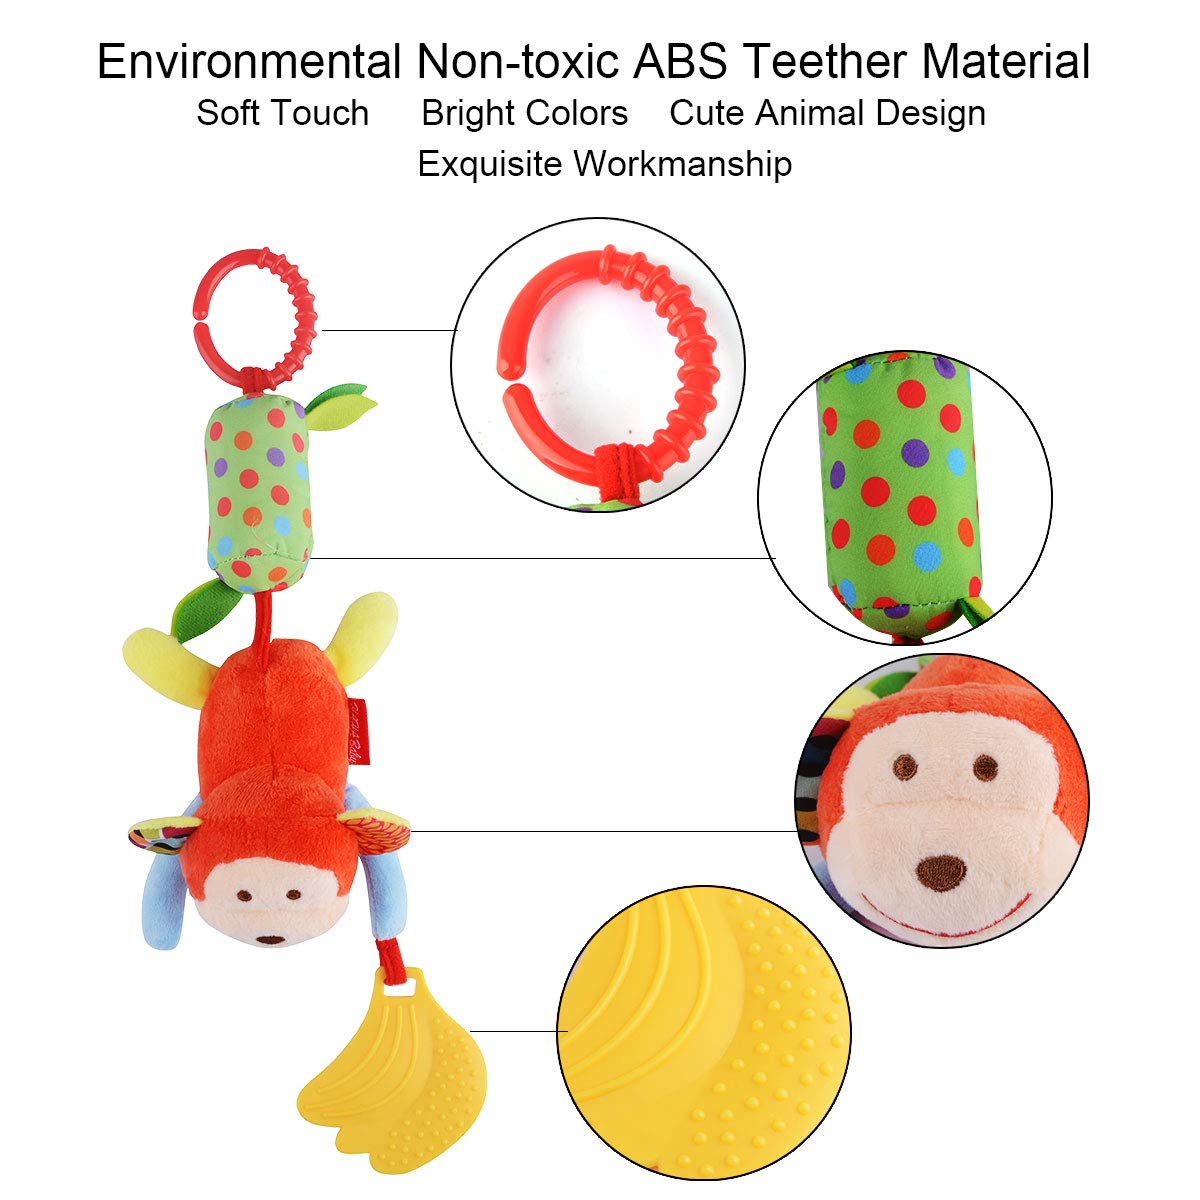 Soft Hanging Crinkle Squeaky Sensory Educational Toy Infant Newborn Stroller Car Seat Crib Travel Activity Plush Animal Wind Chime with Teether for Boys Girls HAHA Baby Toys for 0 3 6 to 12 Months